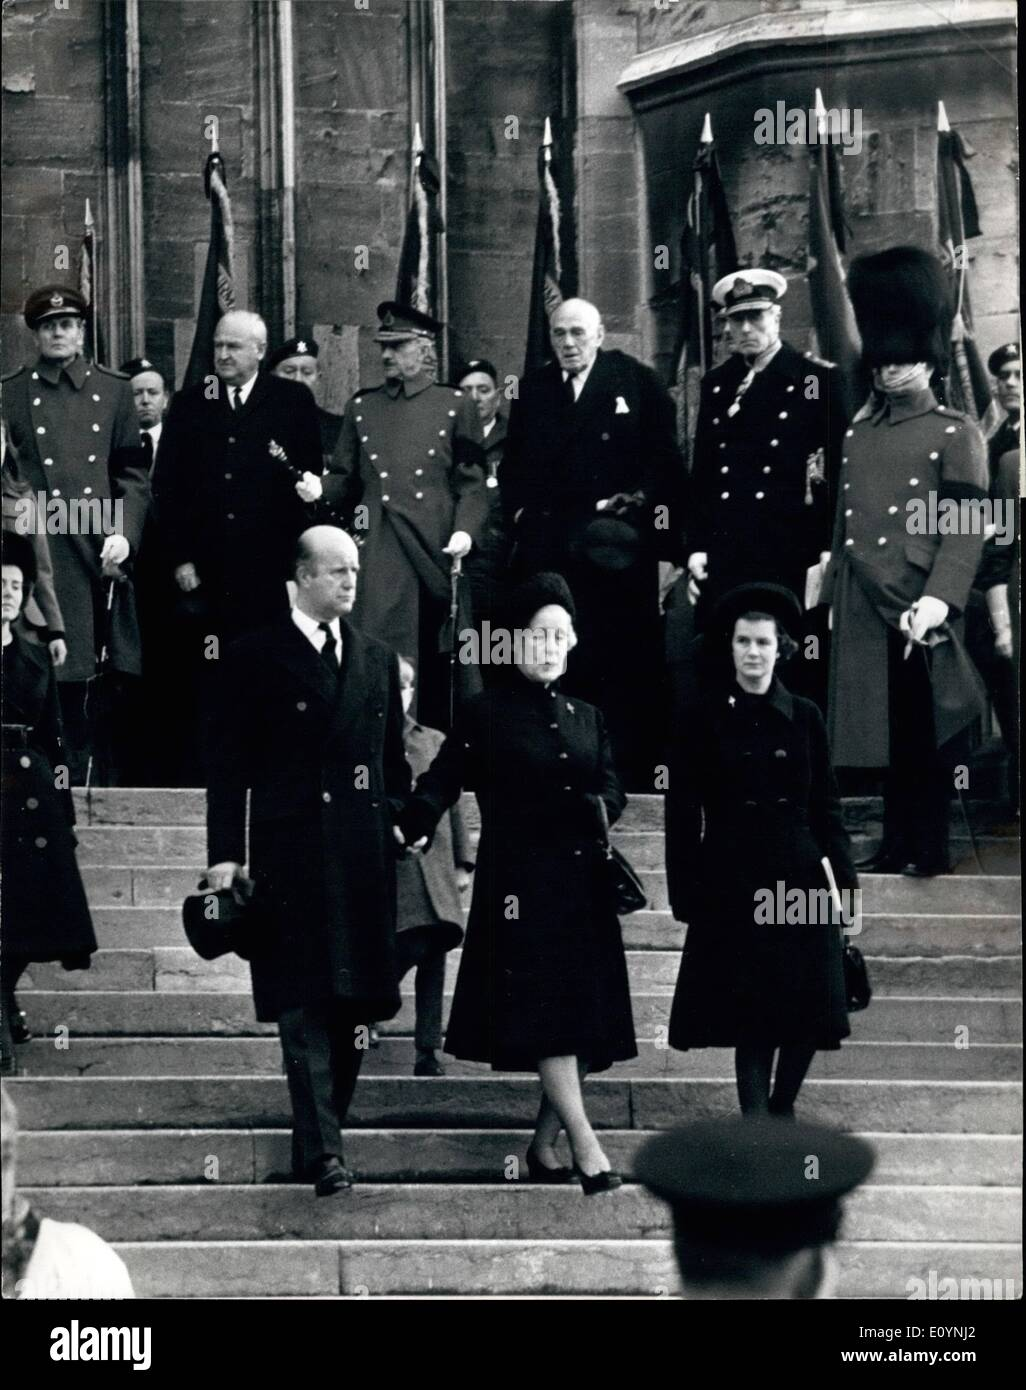 Dec. 12, 1970 - Full Military Honours For Lord Slim: Windsor, England Lady Slim (second from right, fore-ground) wife of the late Field Marshal Lord Slim, slowly descends the steps of St. George's Chapel, Windsor Castle here today after attending the funeral service for her husband who died on December 14th. Lady Slim is flanked by her daughter (on right) and her son, the new Lord Slim. Behind her (second from right, back-ground) is the Earl Mountbatten of Burma. Field-Marshal Viscount Slim was afforded full military honours - Stock Image